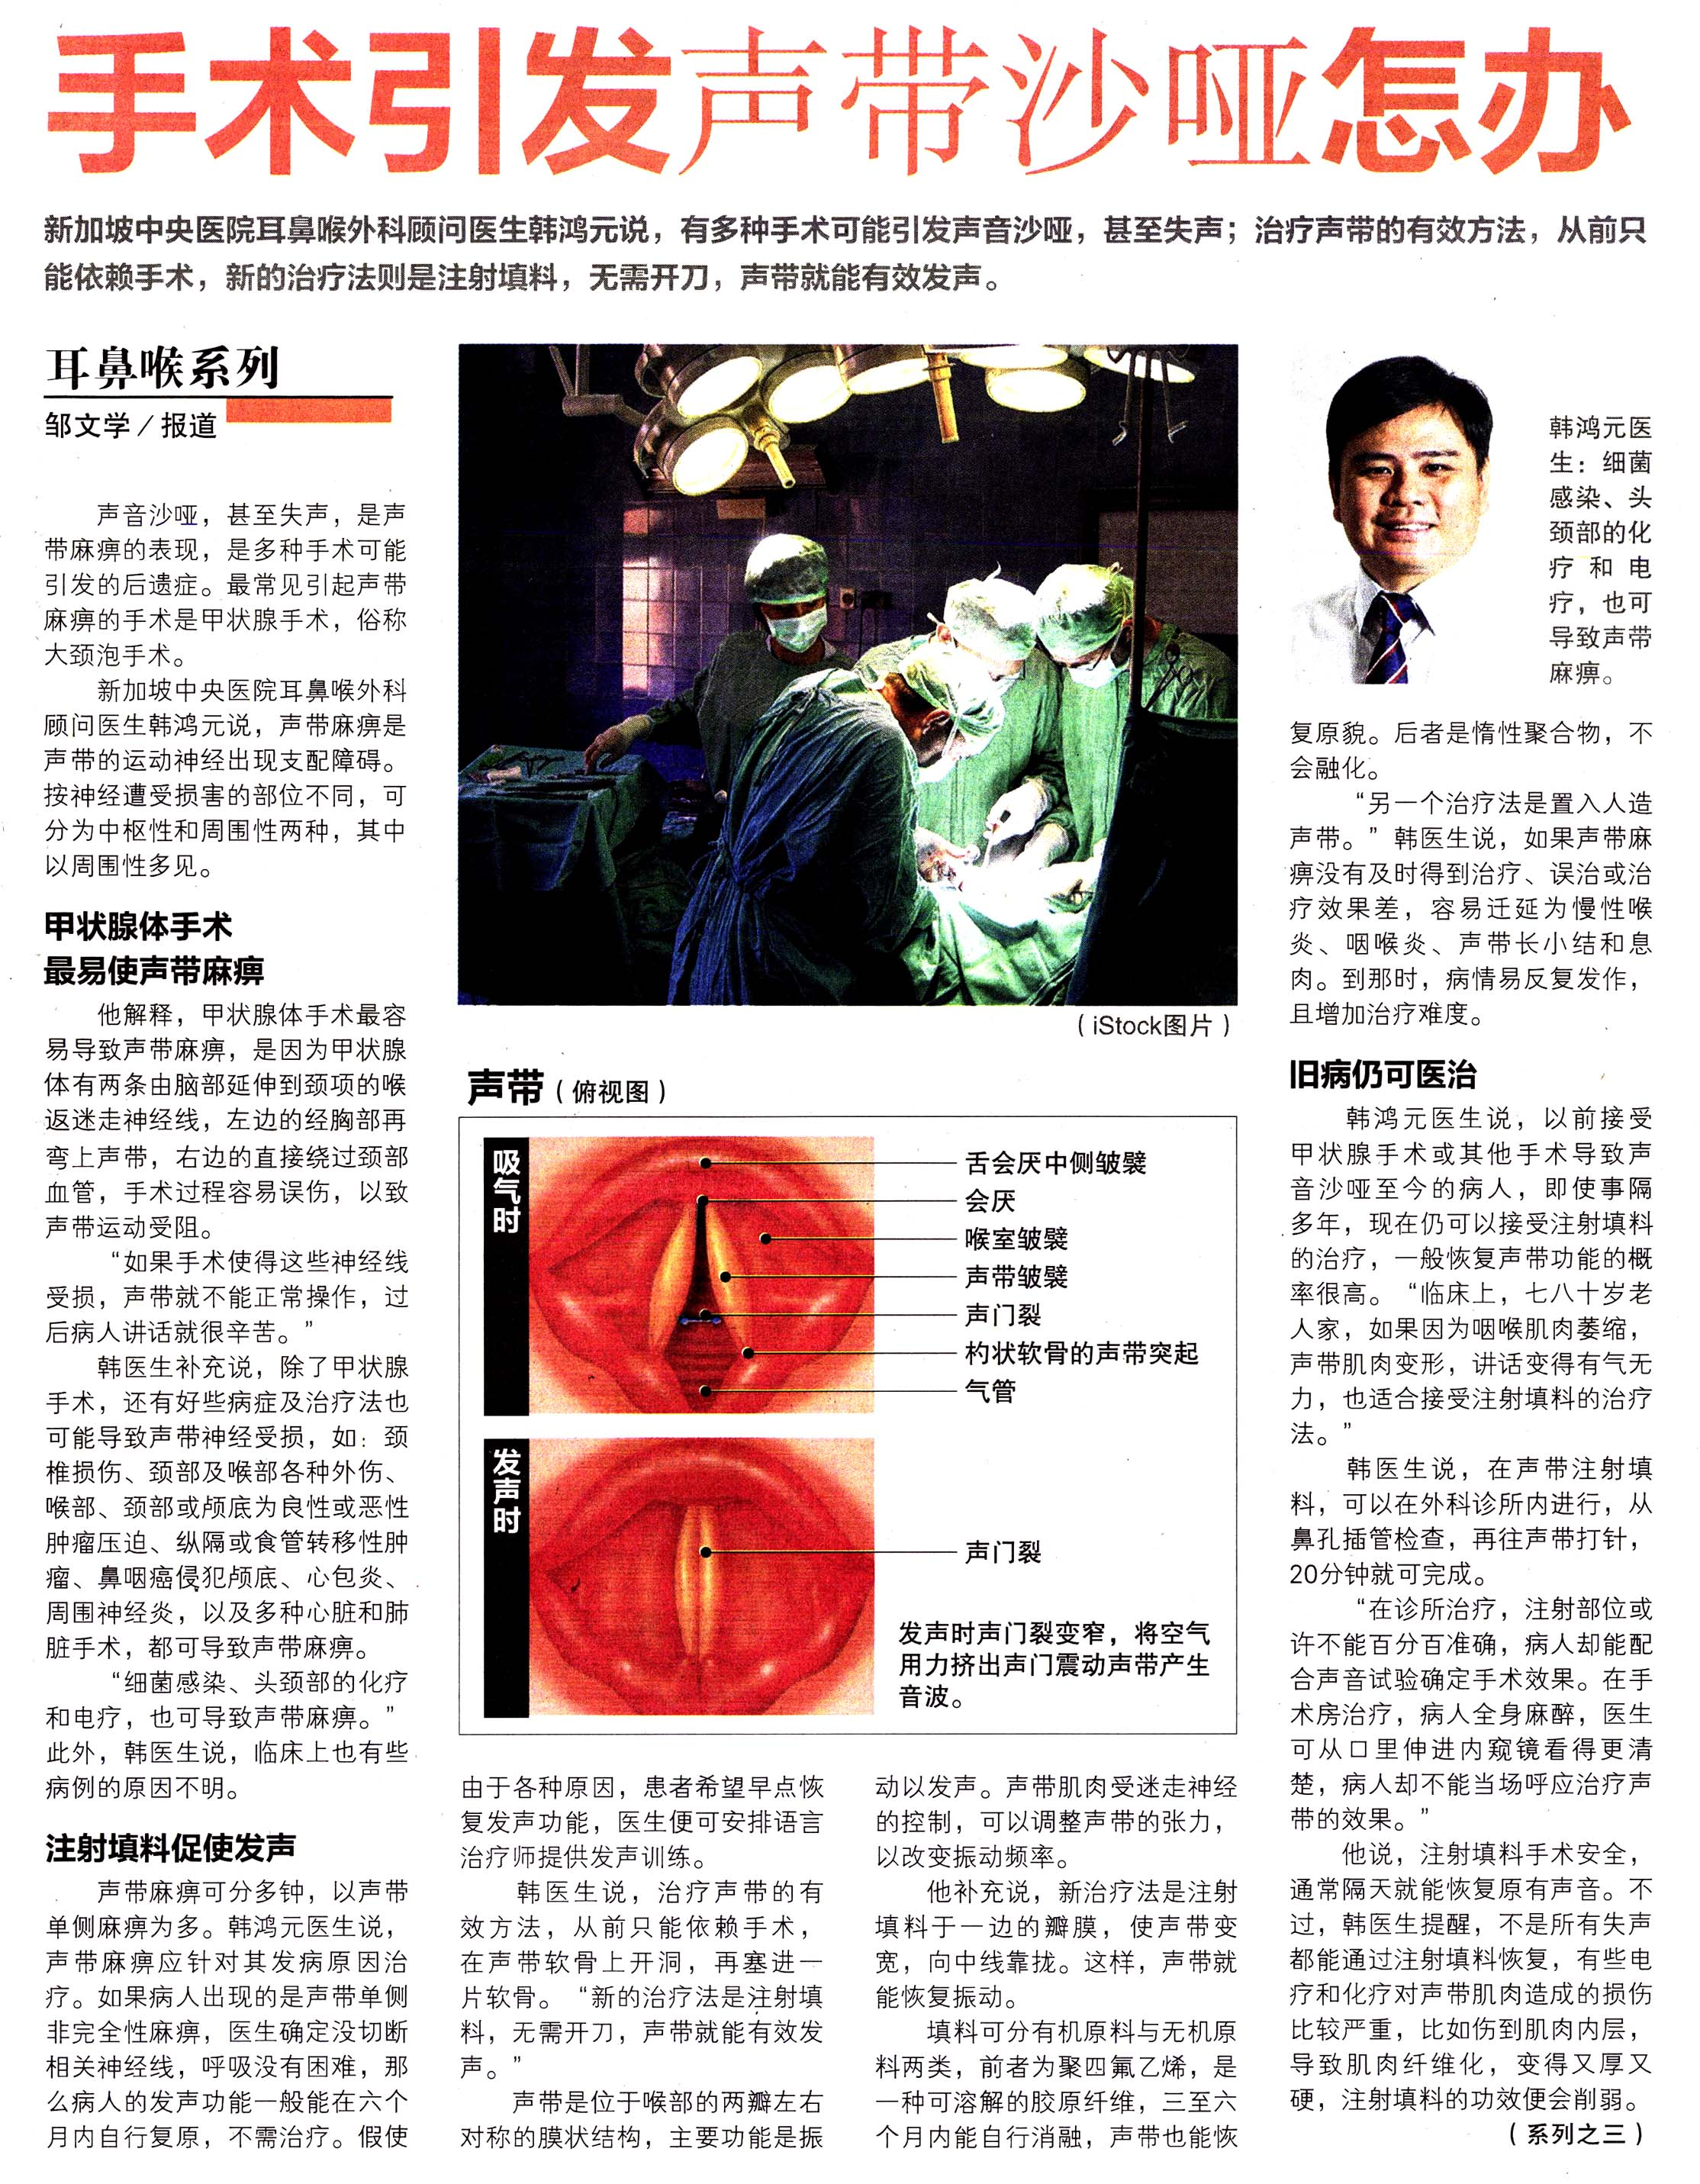 zbNOW-04 Apr 17-Pg 02-What to do about surgery induced hoarseness.jpg